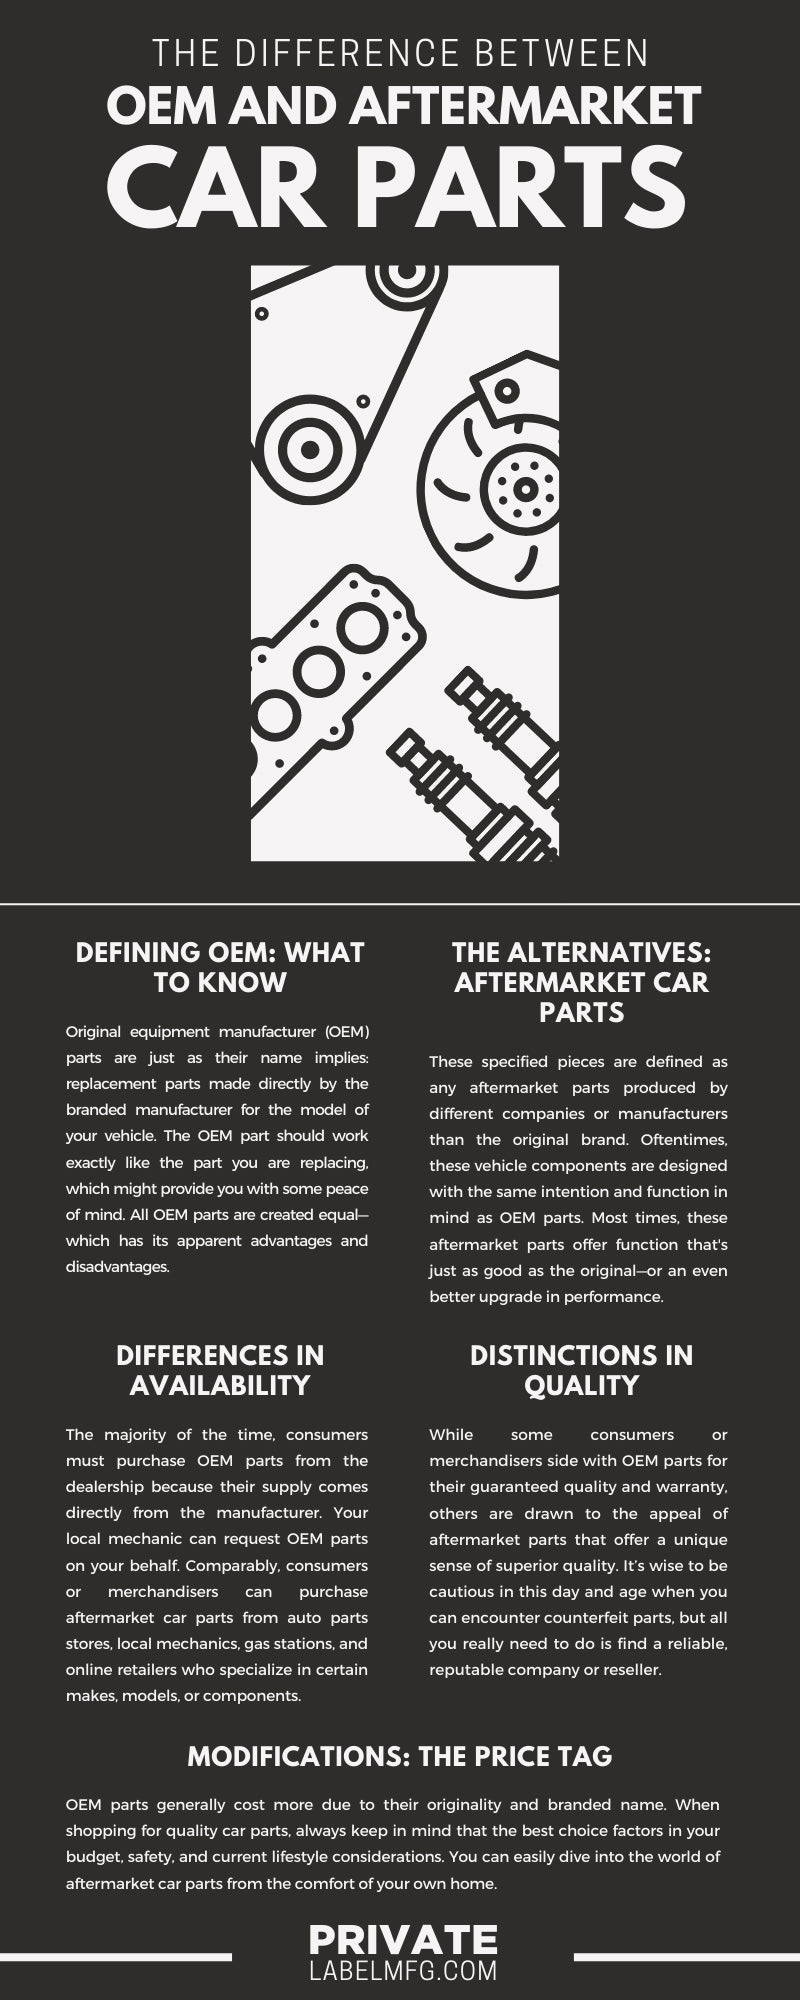 The Difference Between OEM and Aftermarket Car Parts